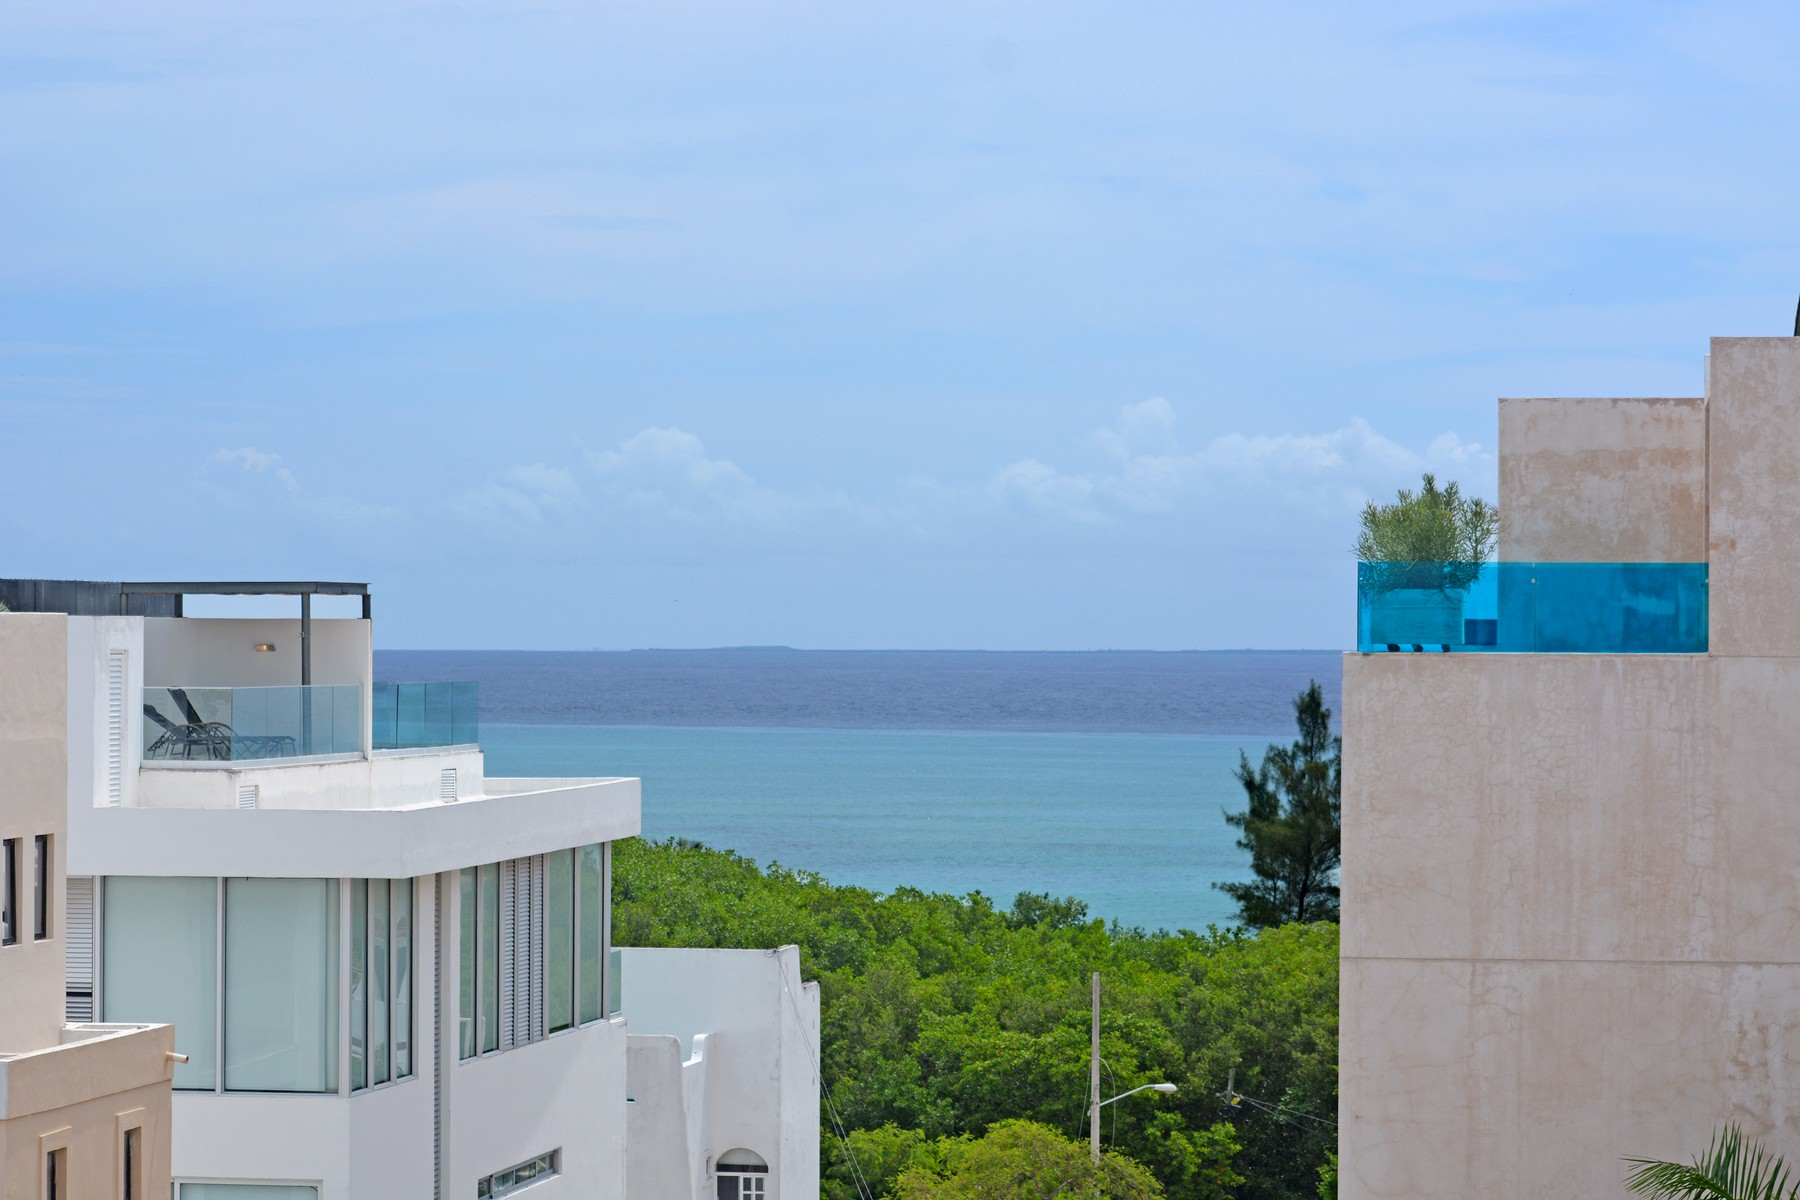 Additional photo for property listing at GORGEOUS LARGE 3 BEDROOM 2 STEPS FROM THE BEACH Gorgeous large 3 bedroom 2 steps from the beach Lot 006, 1st. North Avenue, Mza. 157, between 40th & 42th North streets Playa Del Carmen, Quintana Roo 77710 Mexico